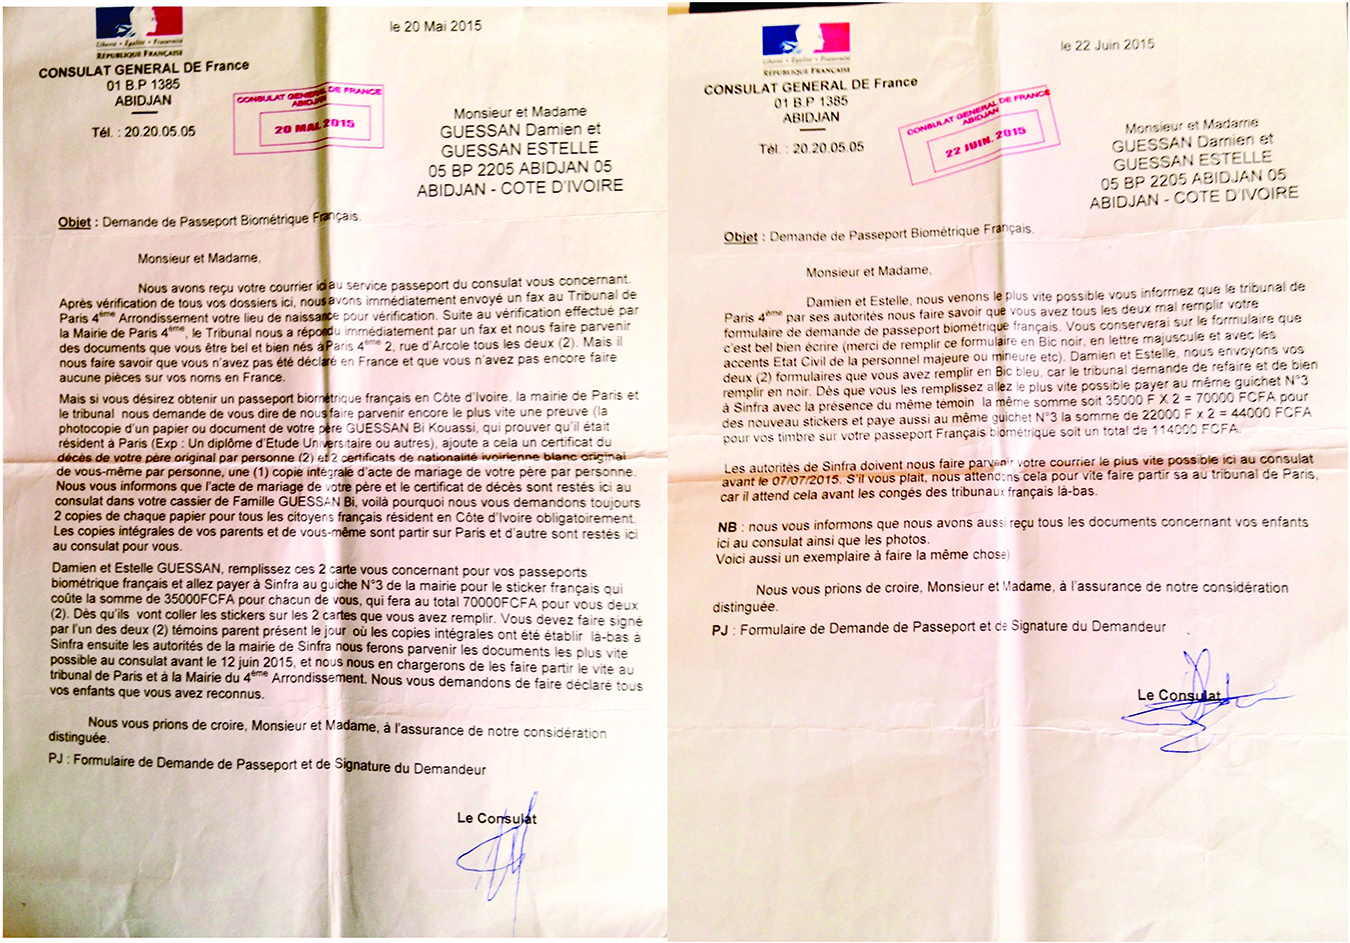 Final forged documents from the French consulate. Notice that there are many errors of French grammar and spelling, but that it was the mismatching signatures that raised Fatou's suspicion of inauthenticity. The names used are aliases. Photo by Sasha Newell.